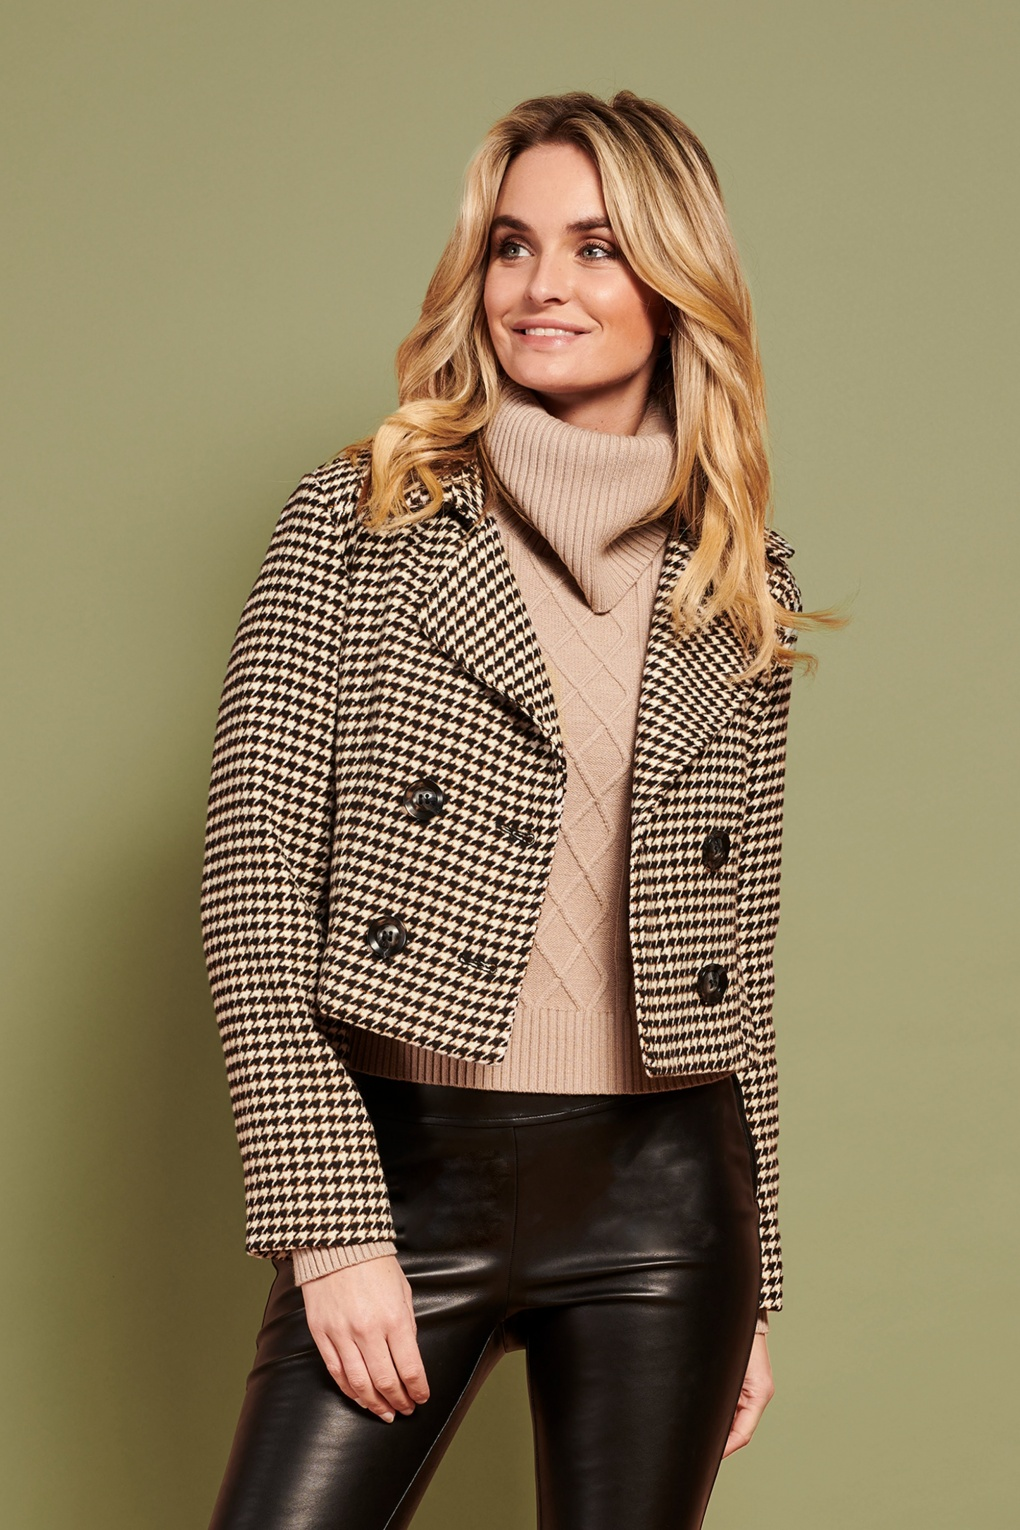 Vintage Coats & Jackets | Retro Coats and Jackets 60s Tully Houndstooth Trench Blazer in Black and Ivory £77.24 AT vintagedancer.com